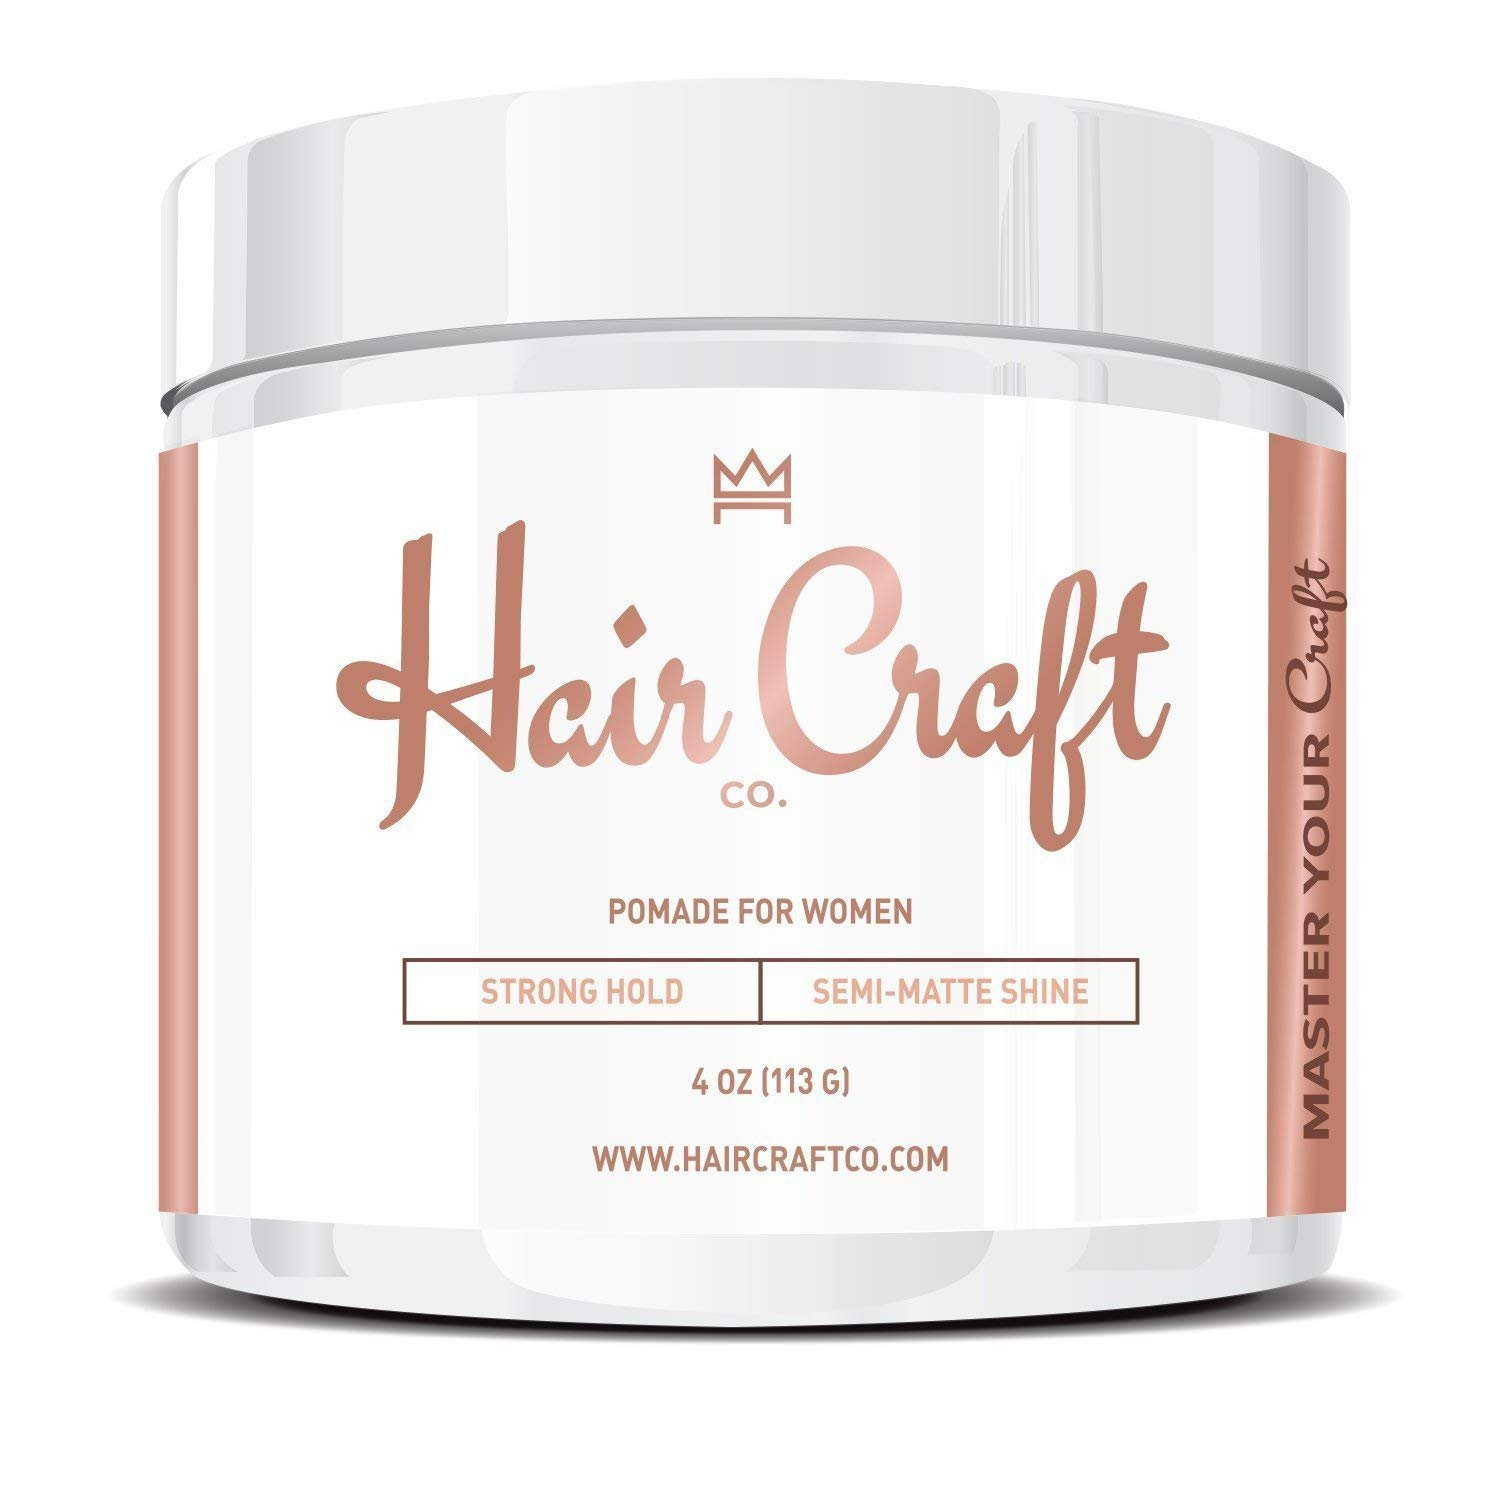 Hair Craft Co. Women's Pomade/Gel 4oz - Best Semi-Matte Finish Shine - Strong Hold – Styling Product, Salon Approved - Water Based/Soluble - Defining Texture & Scented - Straight/Thick/Wavy Hair